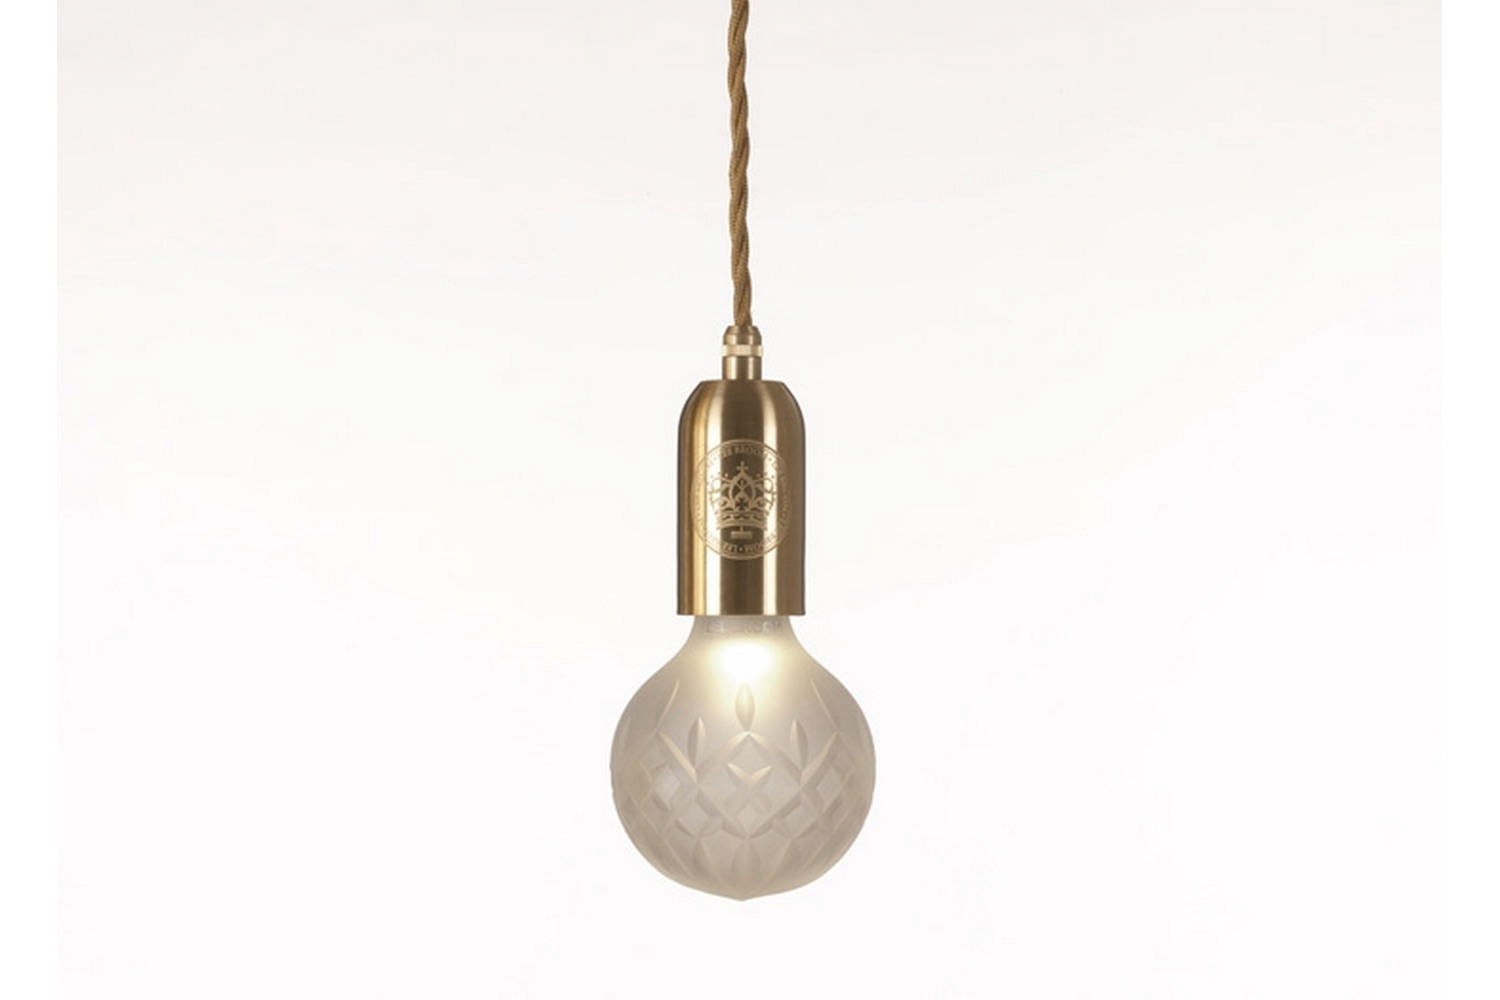 Frosted Crystal Bulb Pendant - Brushed Brass by Lee Broom